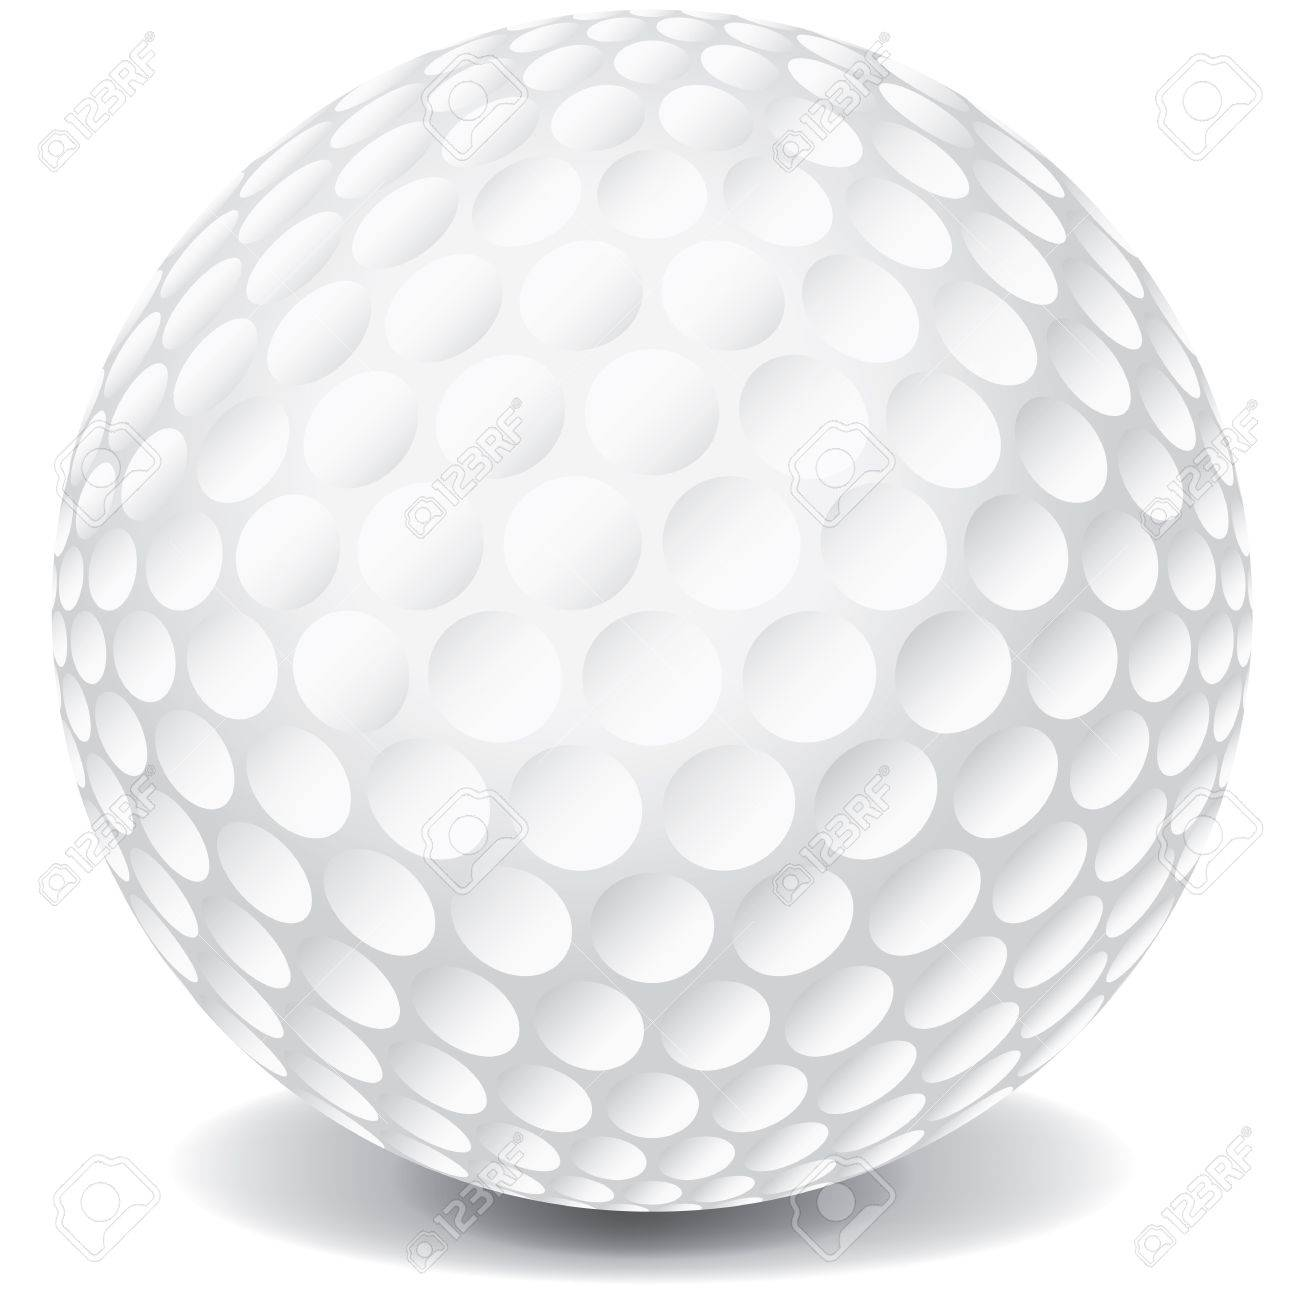 A white golf ball isolated on a white background with a dropshadow. Stock Vector - 20864671